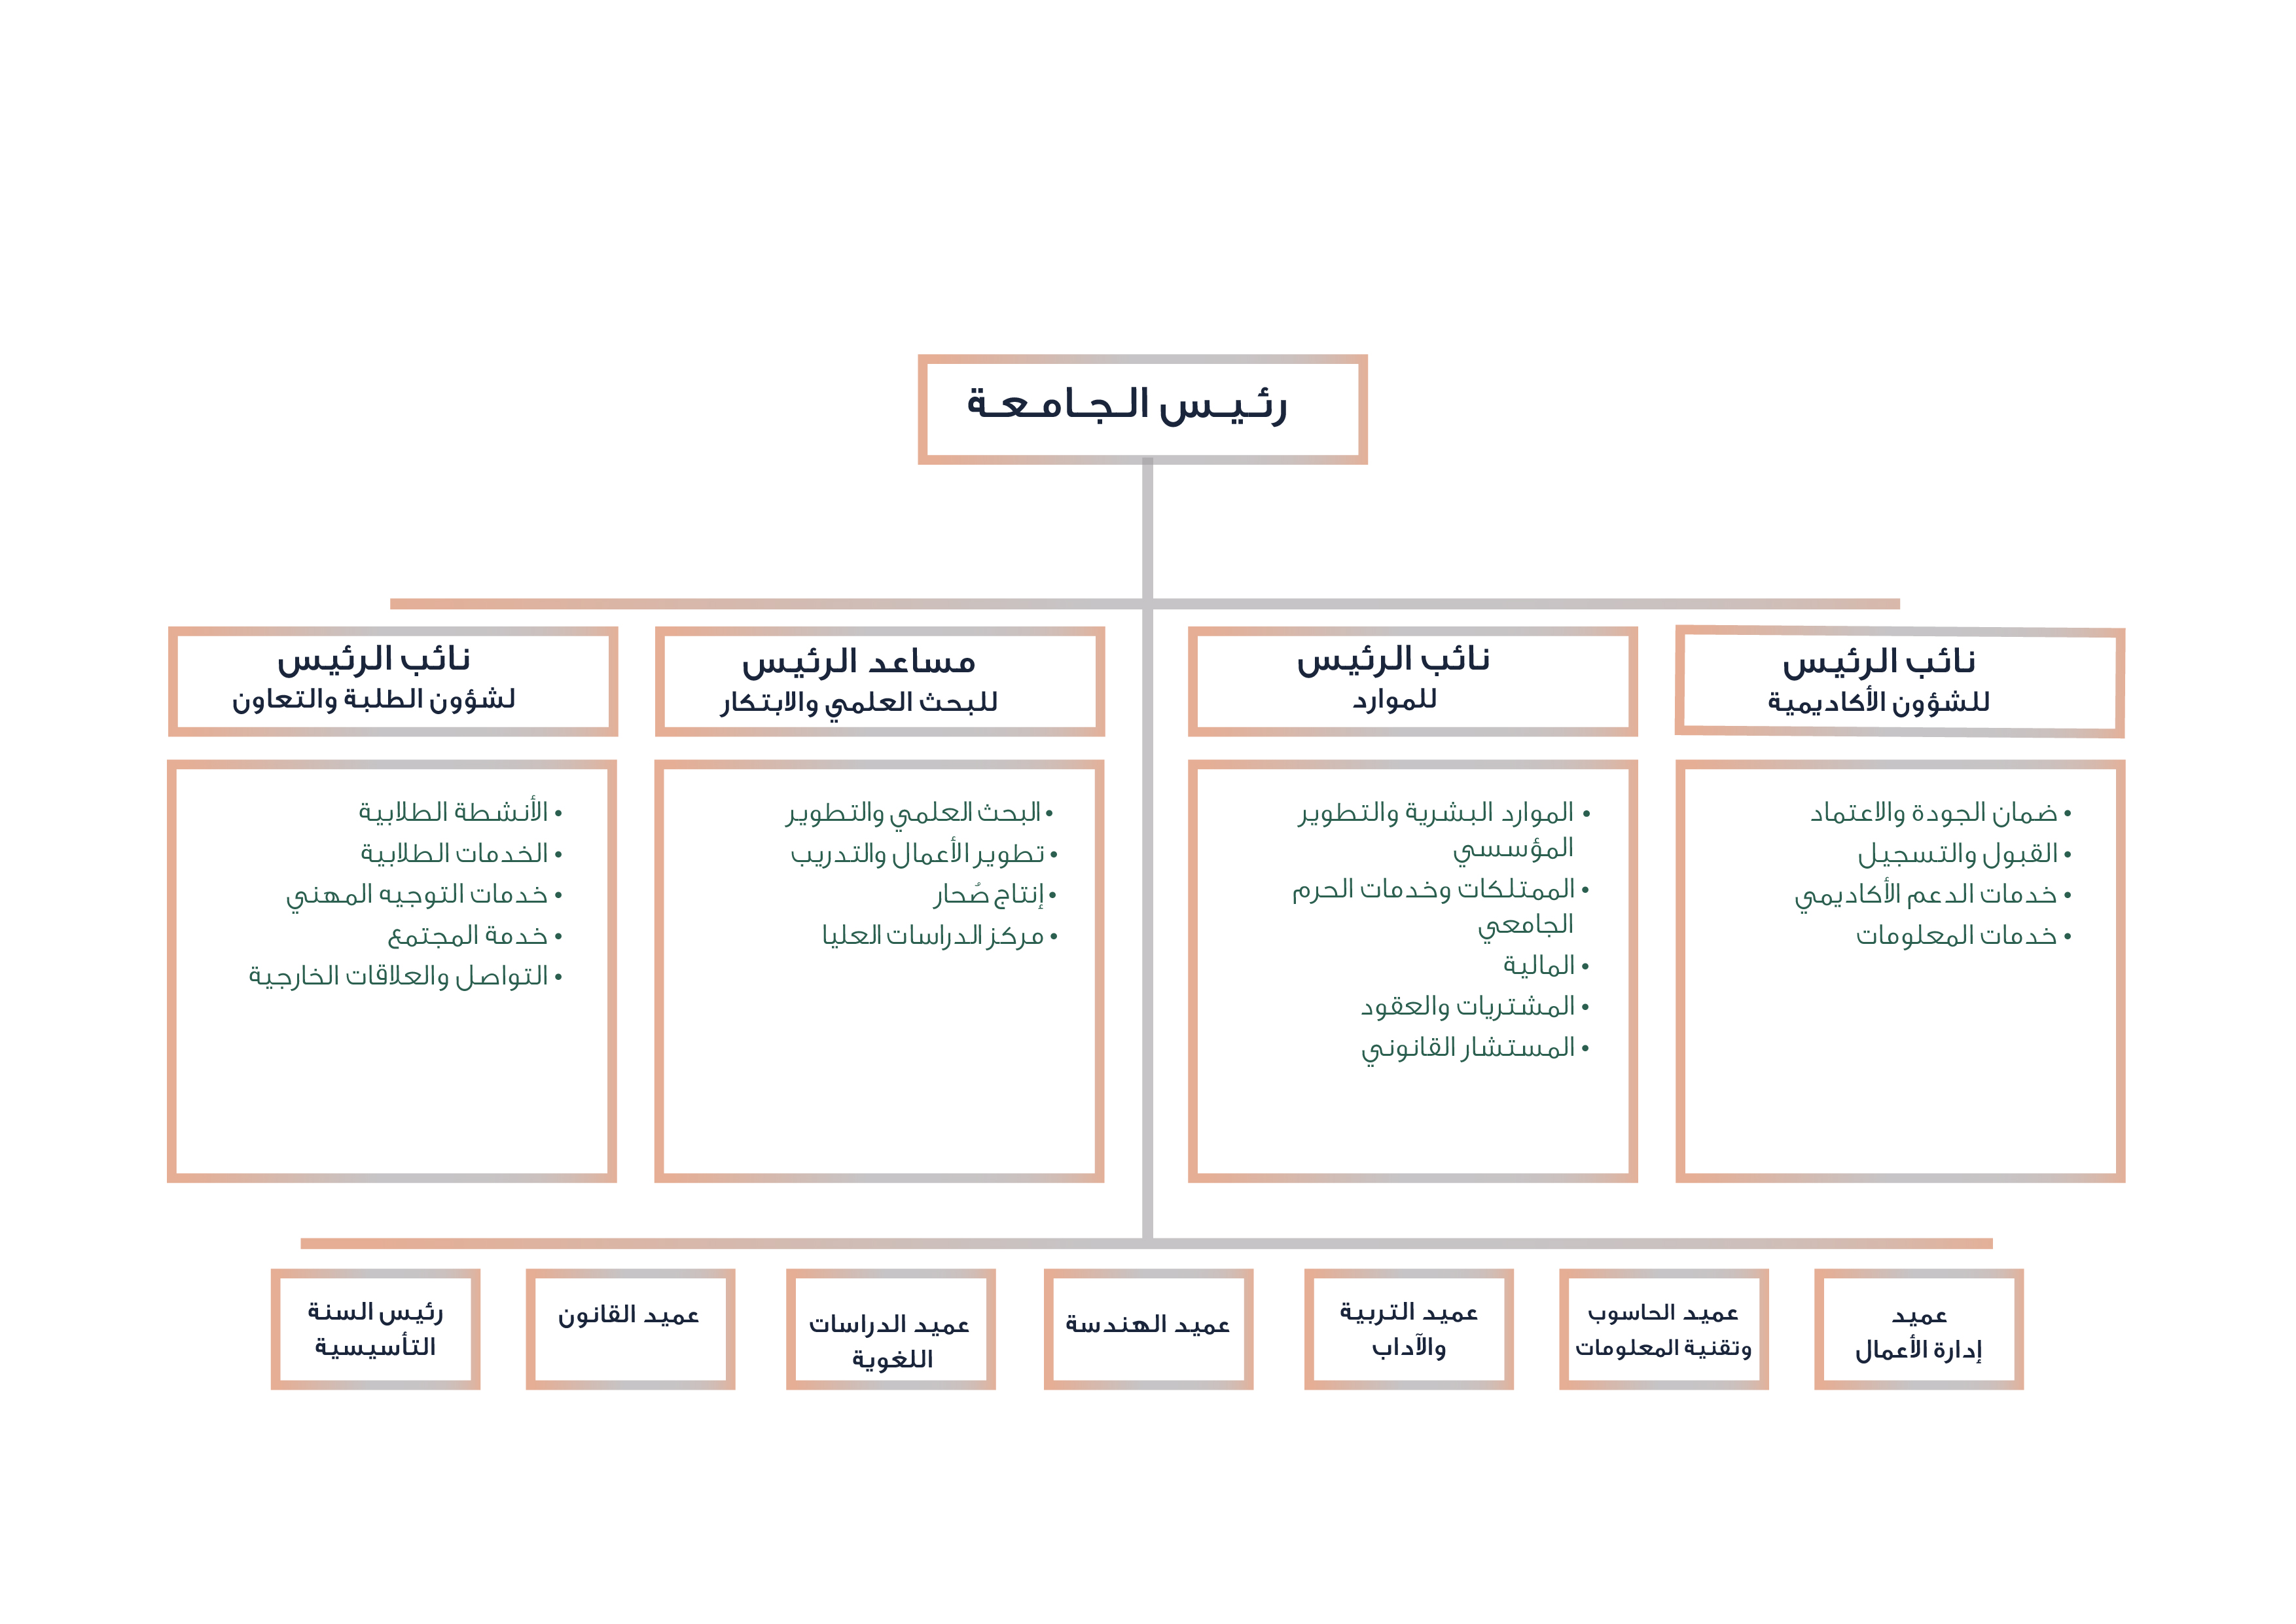 SU Organisational structure